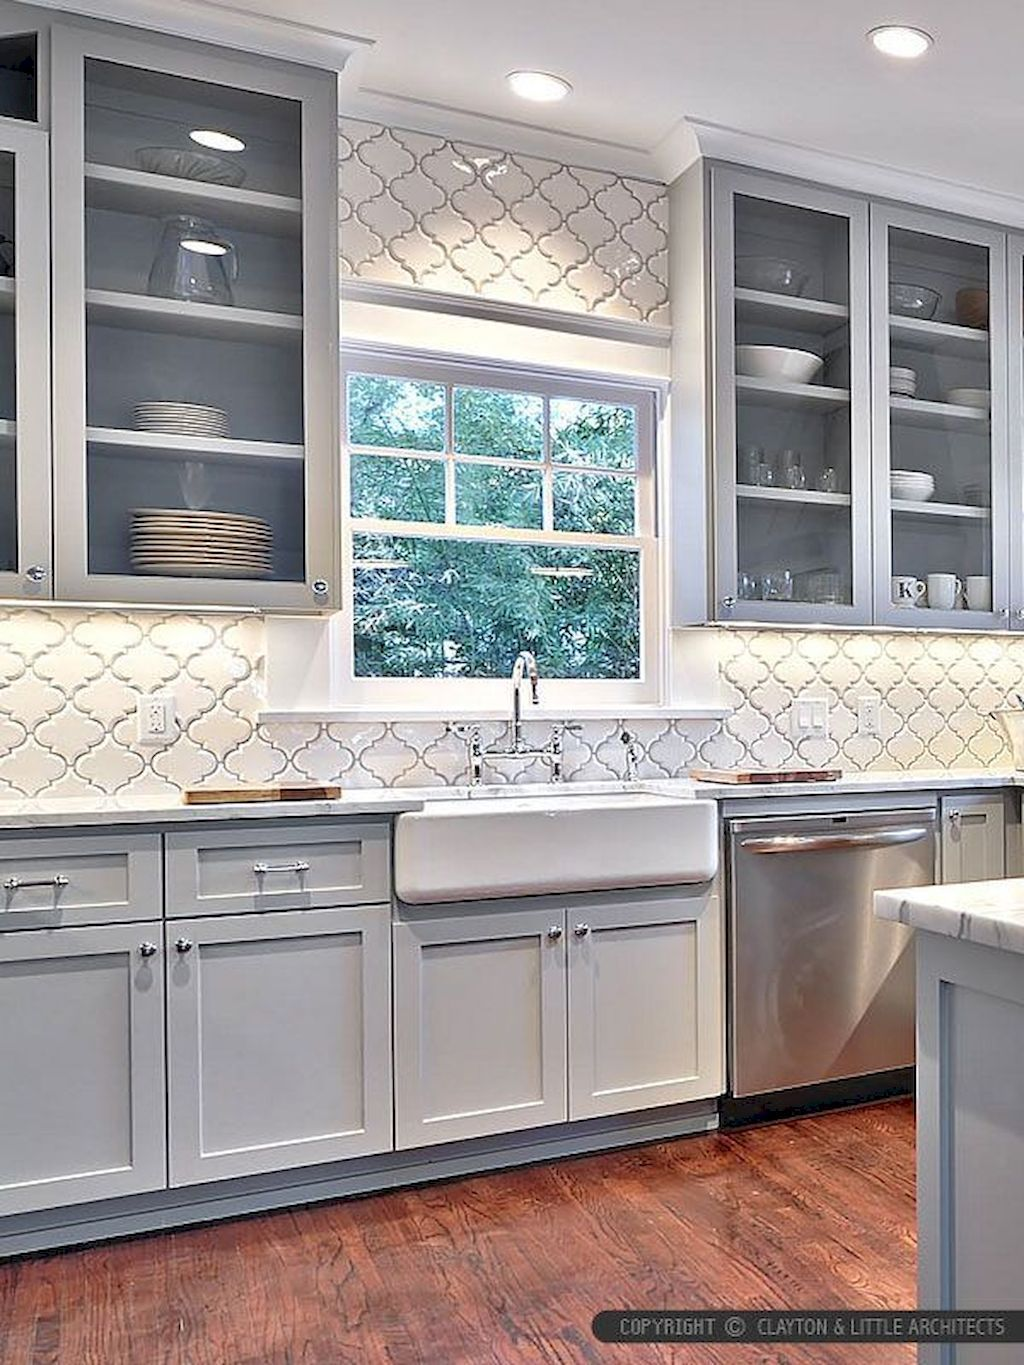 60 fancy farmhouse kitchen backsplash decor ideas (8 | Pinterest ...